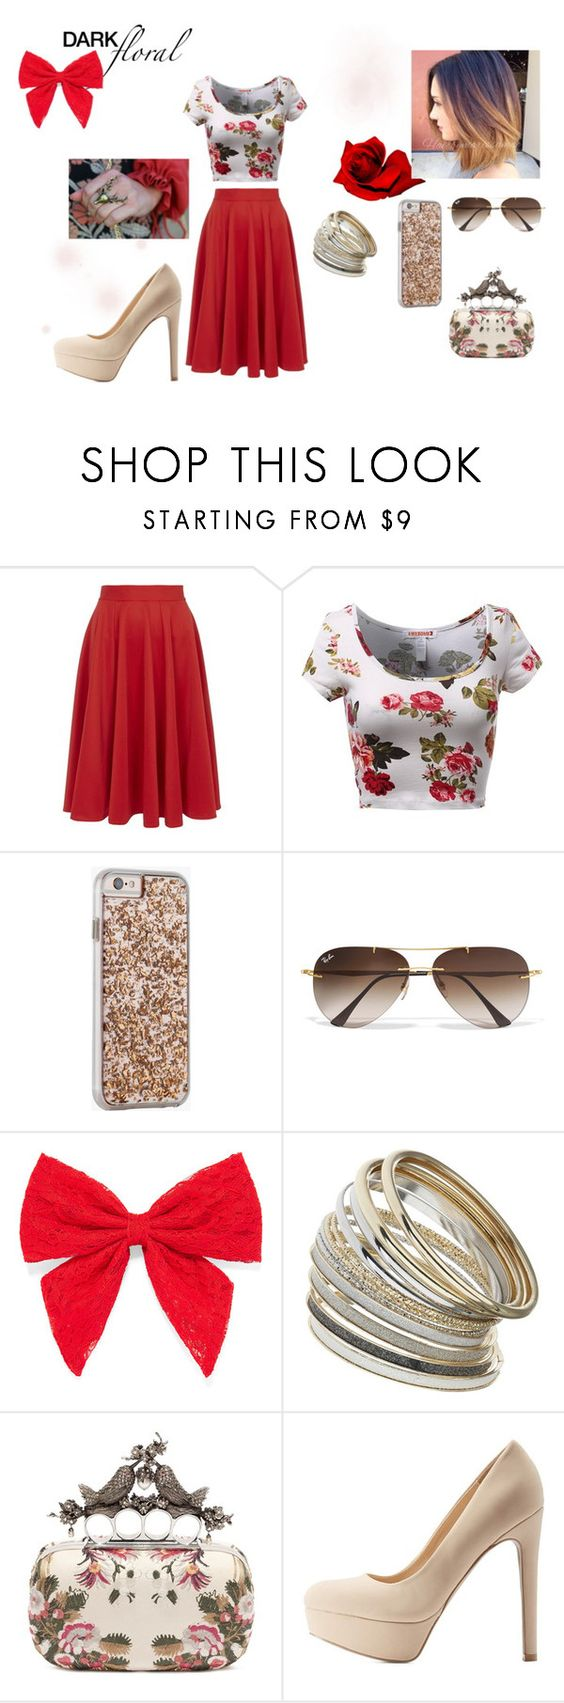 """""""floral"""" by geek-from-hell on Polyvore featuring Closet, Case-Mate, Ray-Ban, Carole, Miss Selfridge, Alexander McQueen, Qupid, women's clothing, women's fashion and women"""